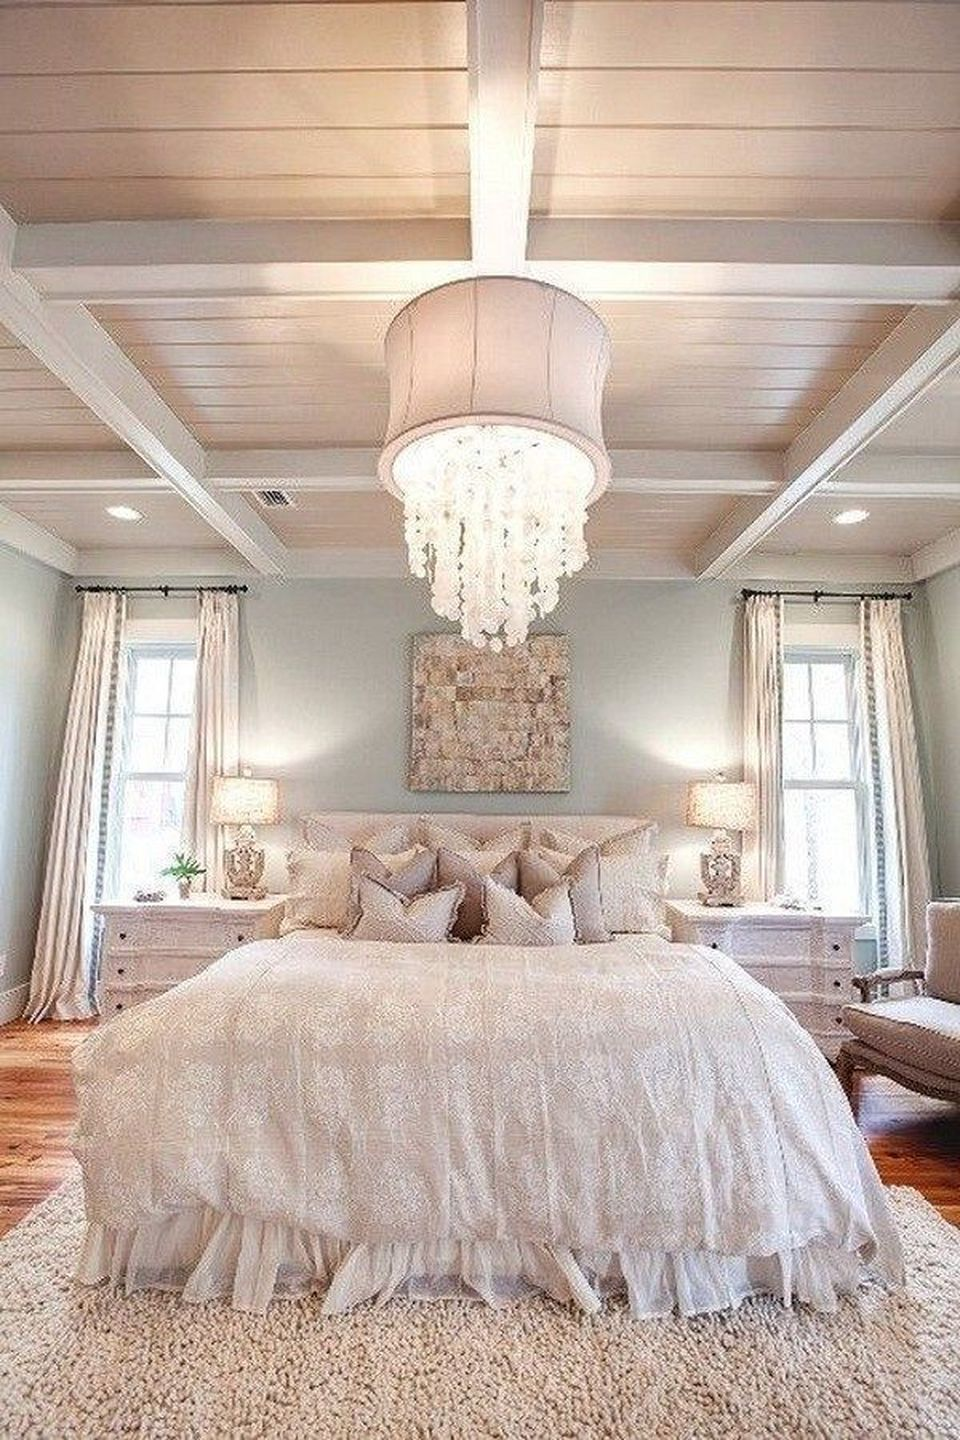 Lovely romantic bedroom decorations for couples master bedroom